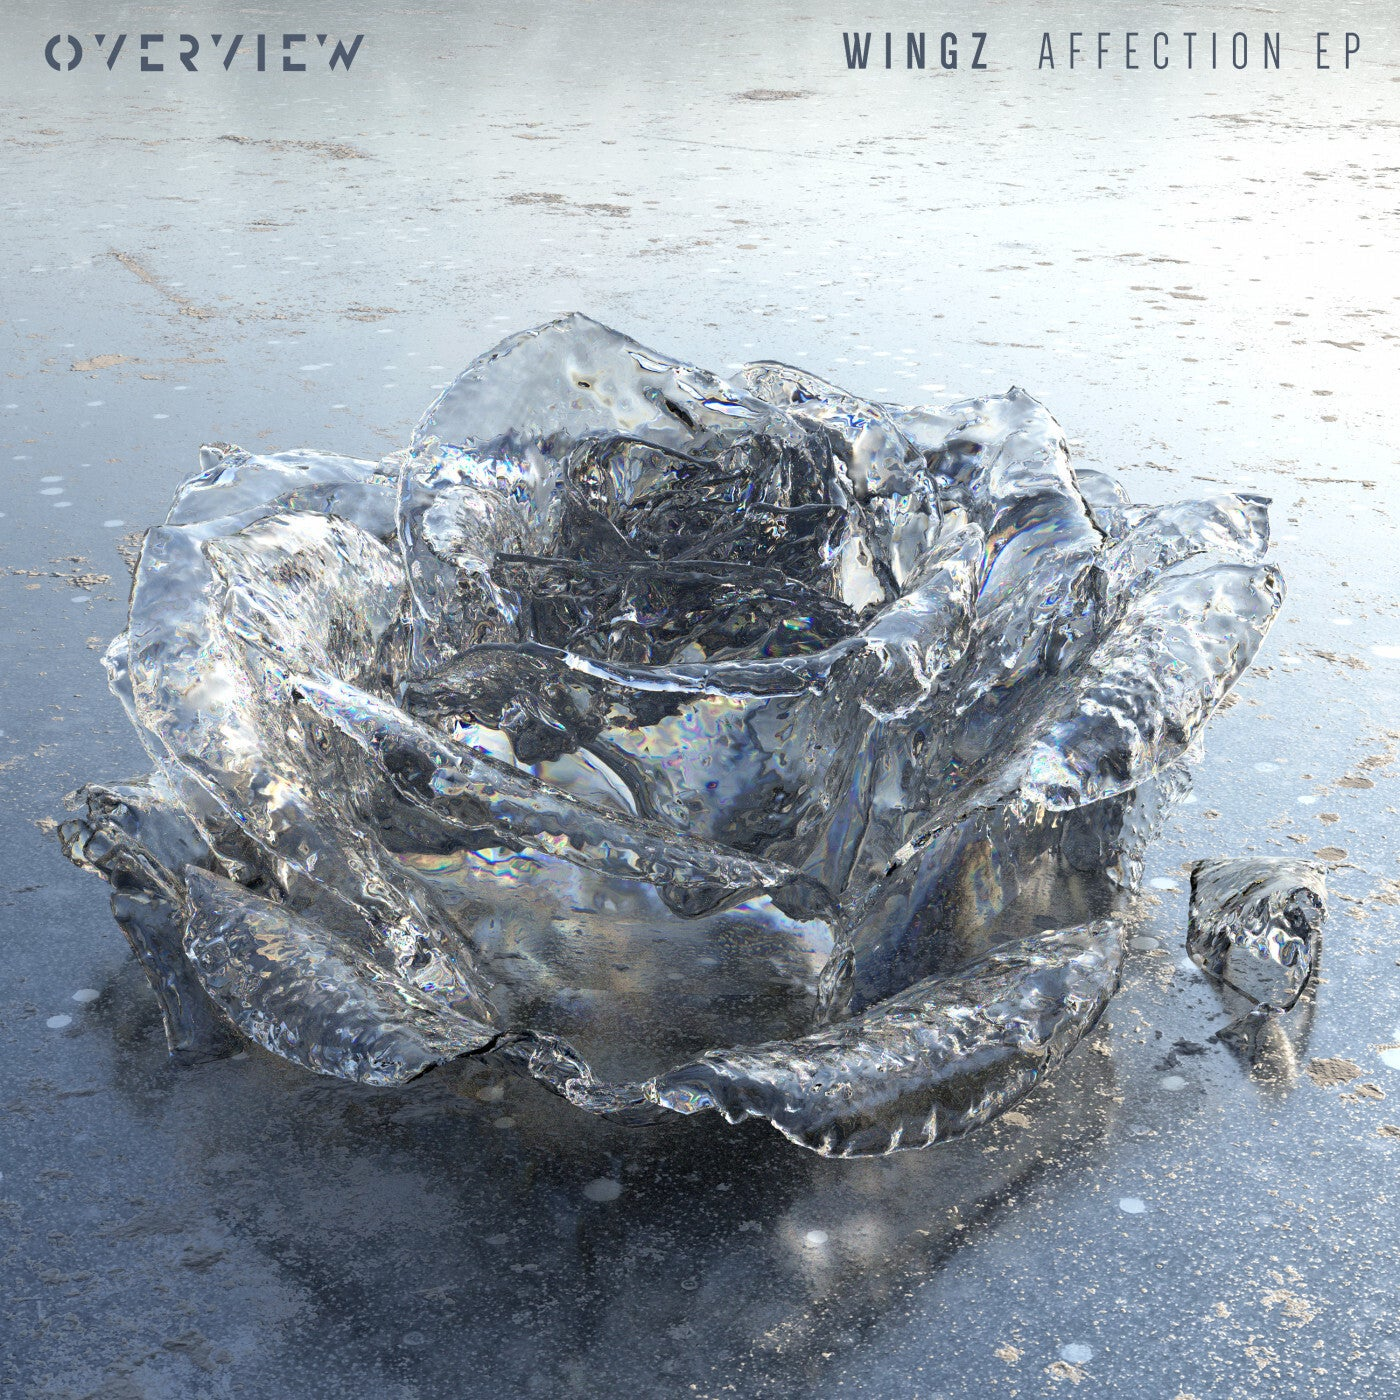 Affection EP